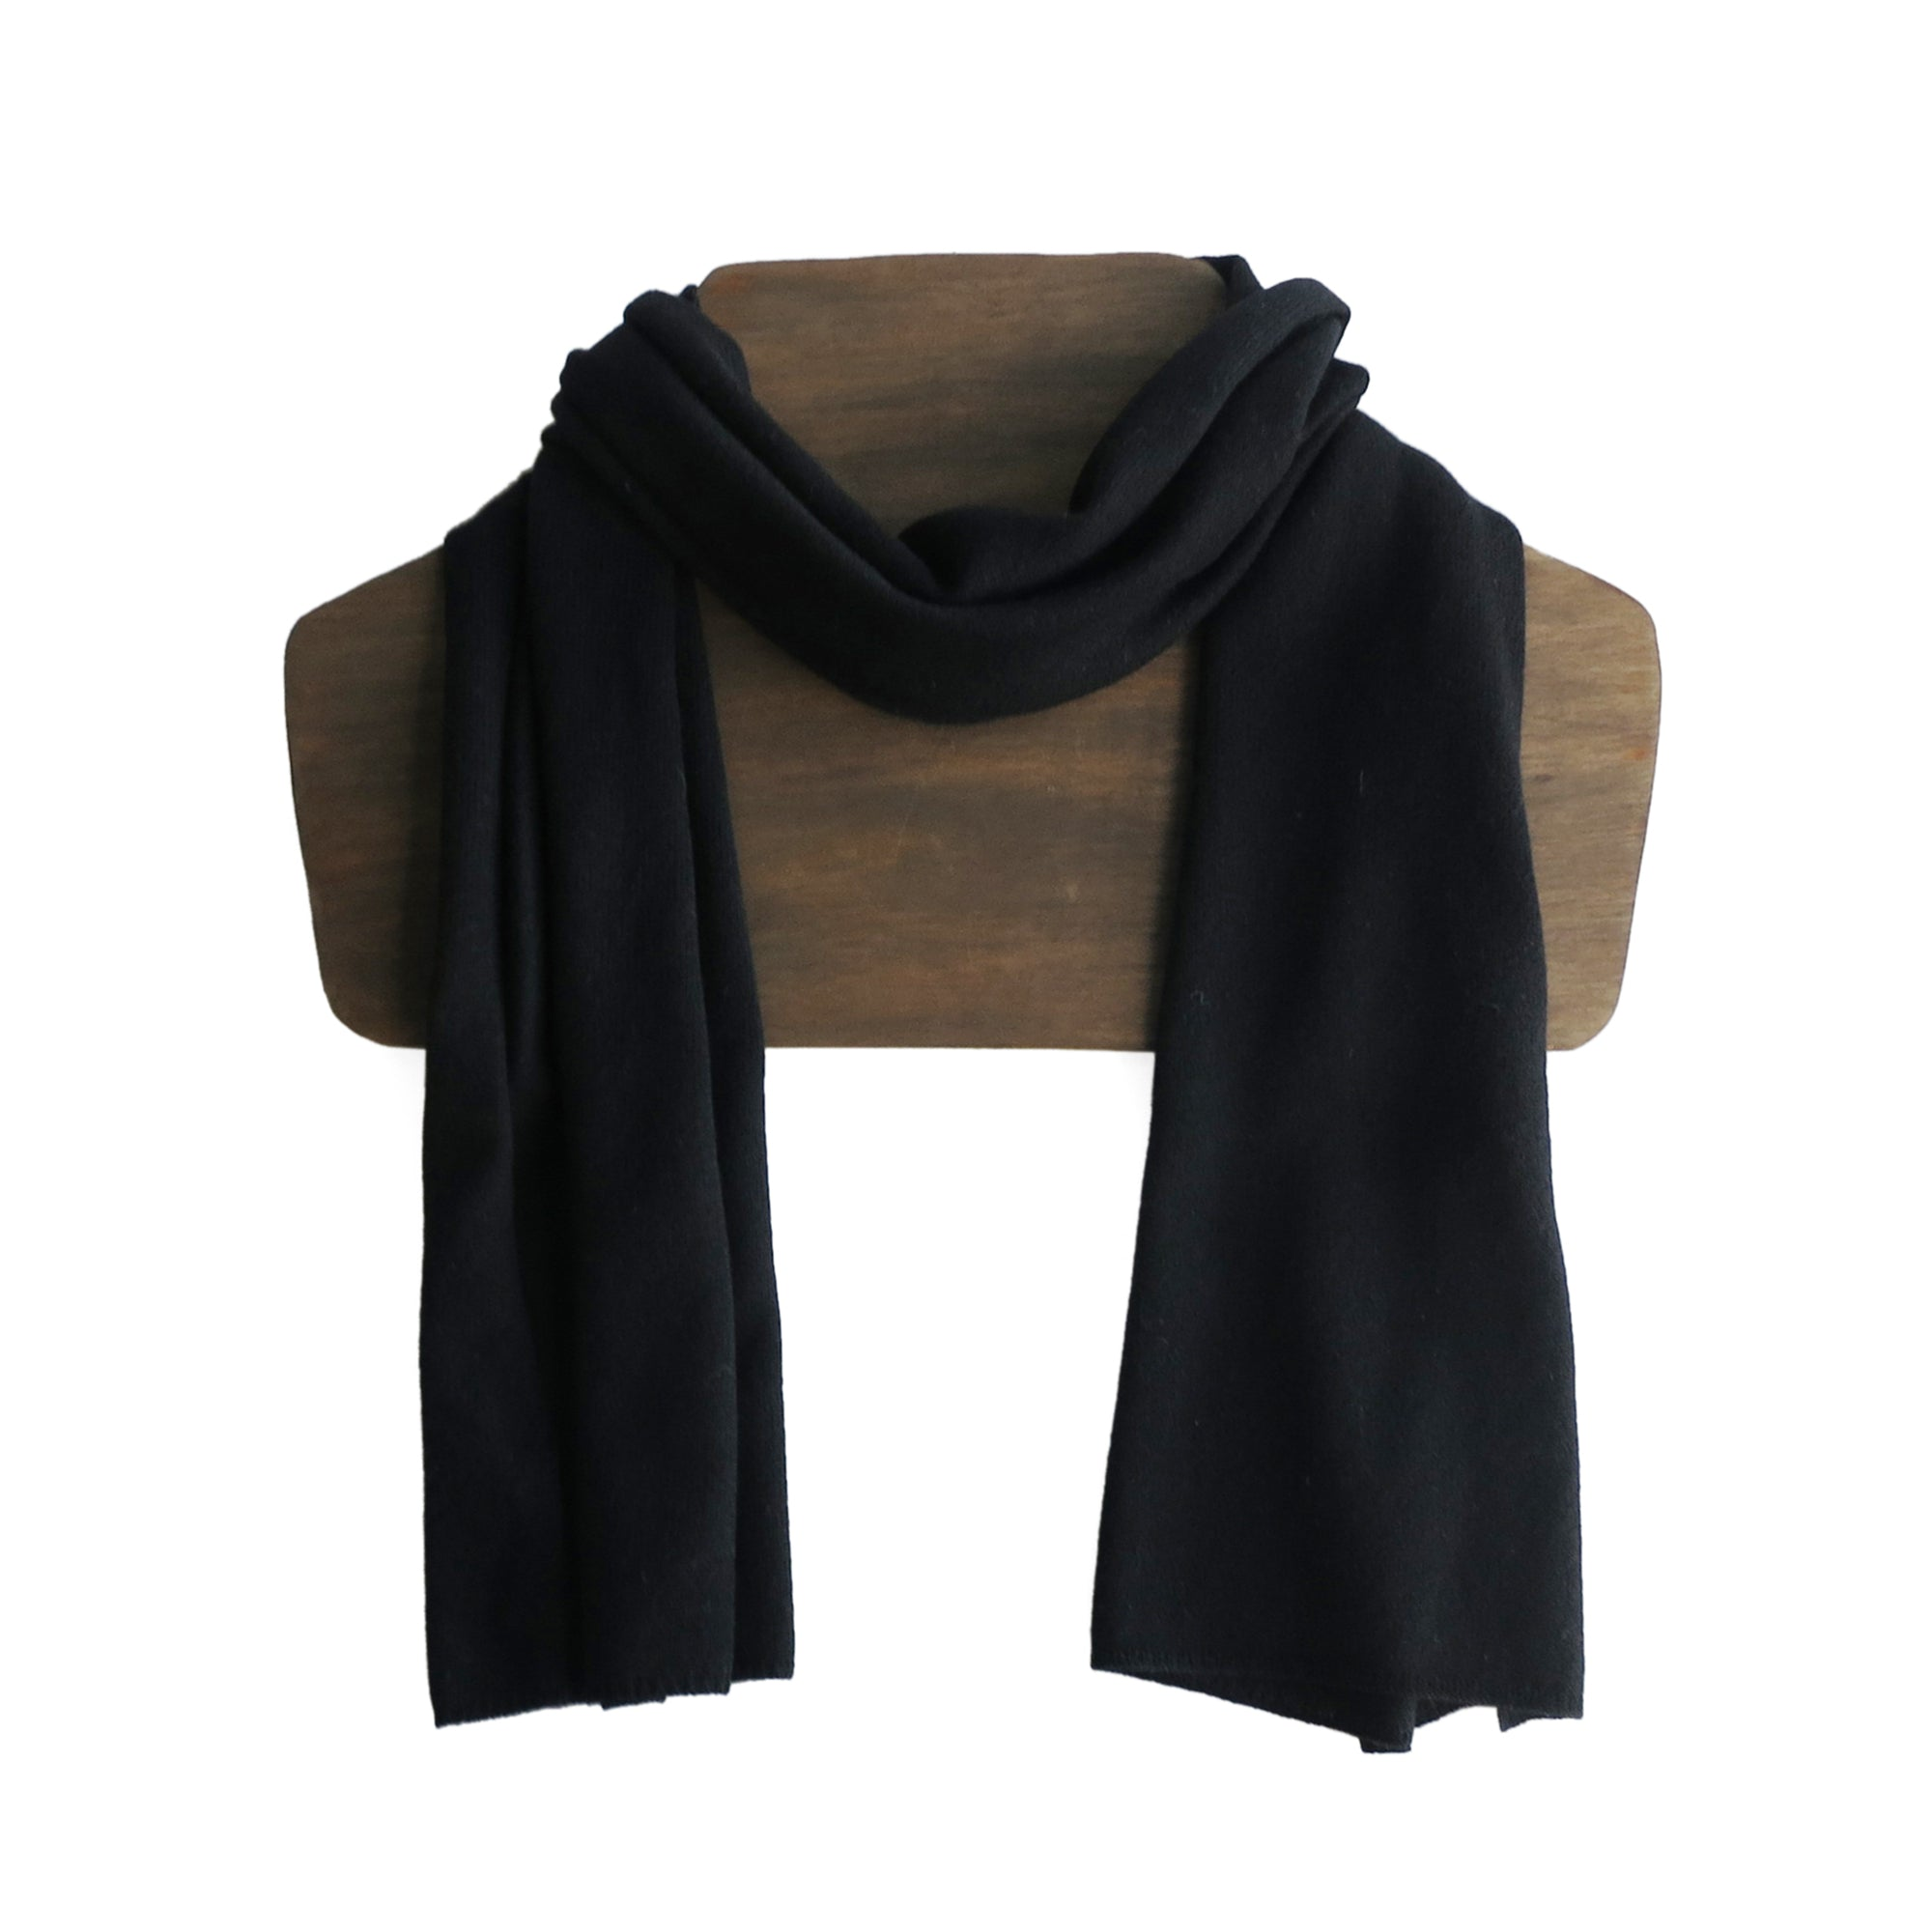 Fairtrade Yak and Merino Scarf in Black